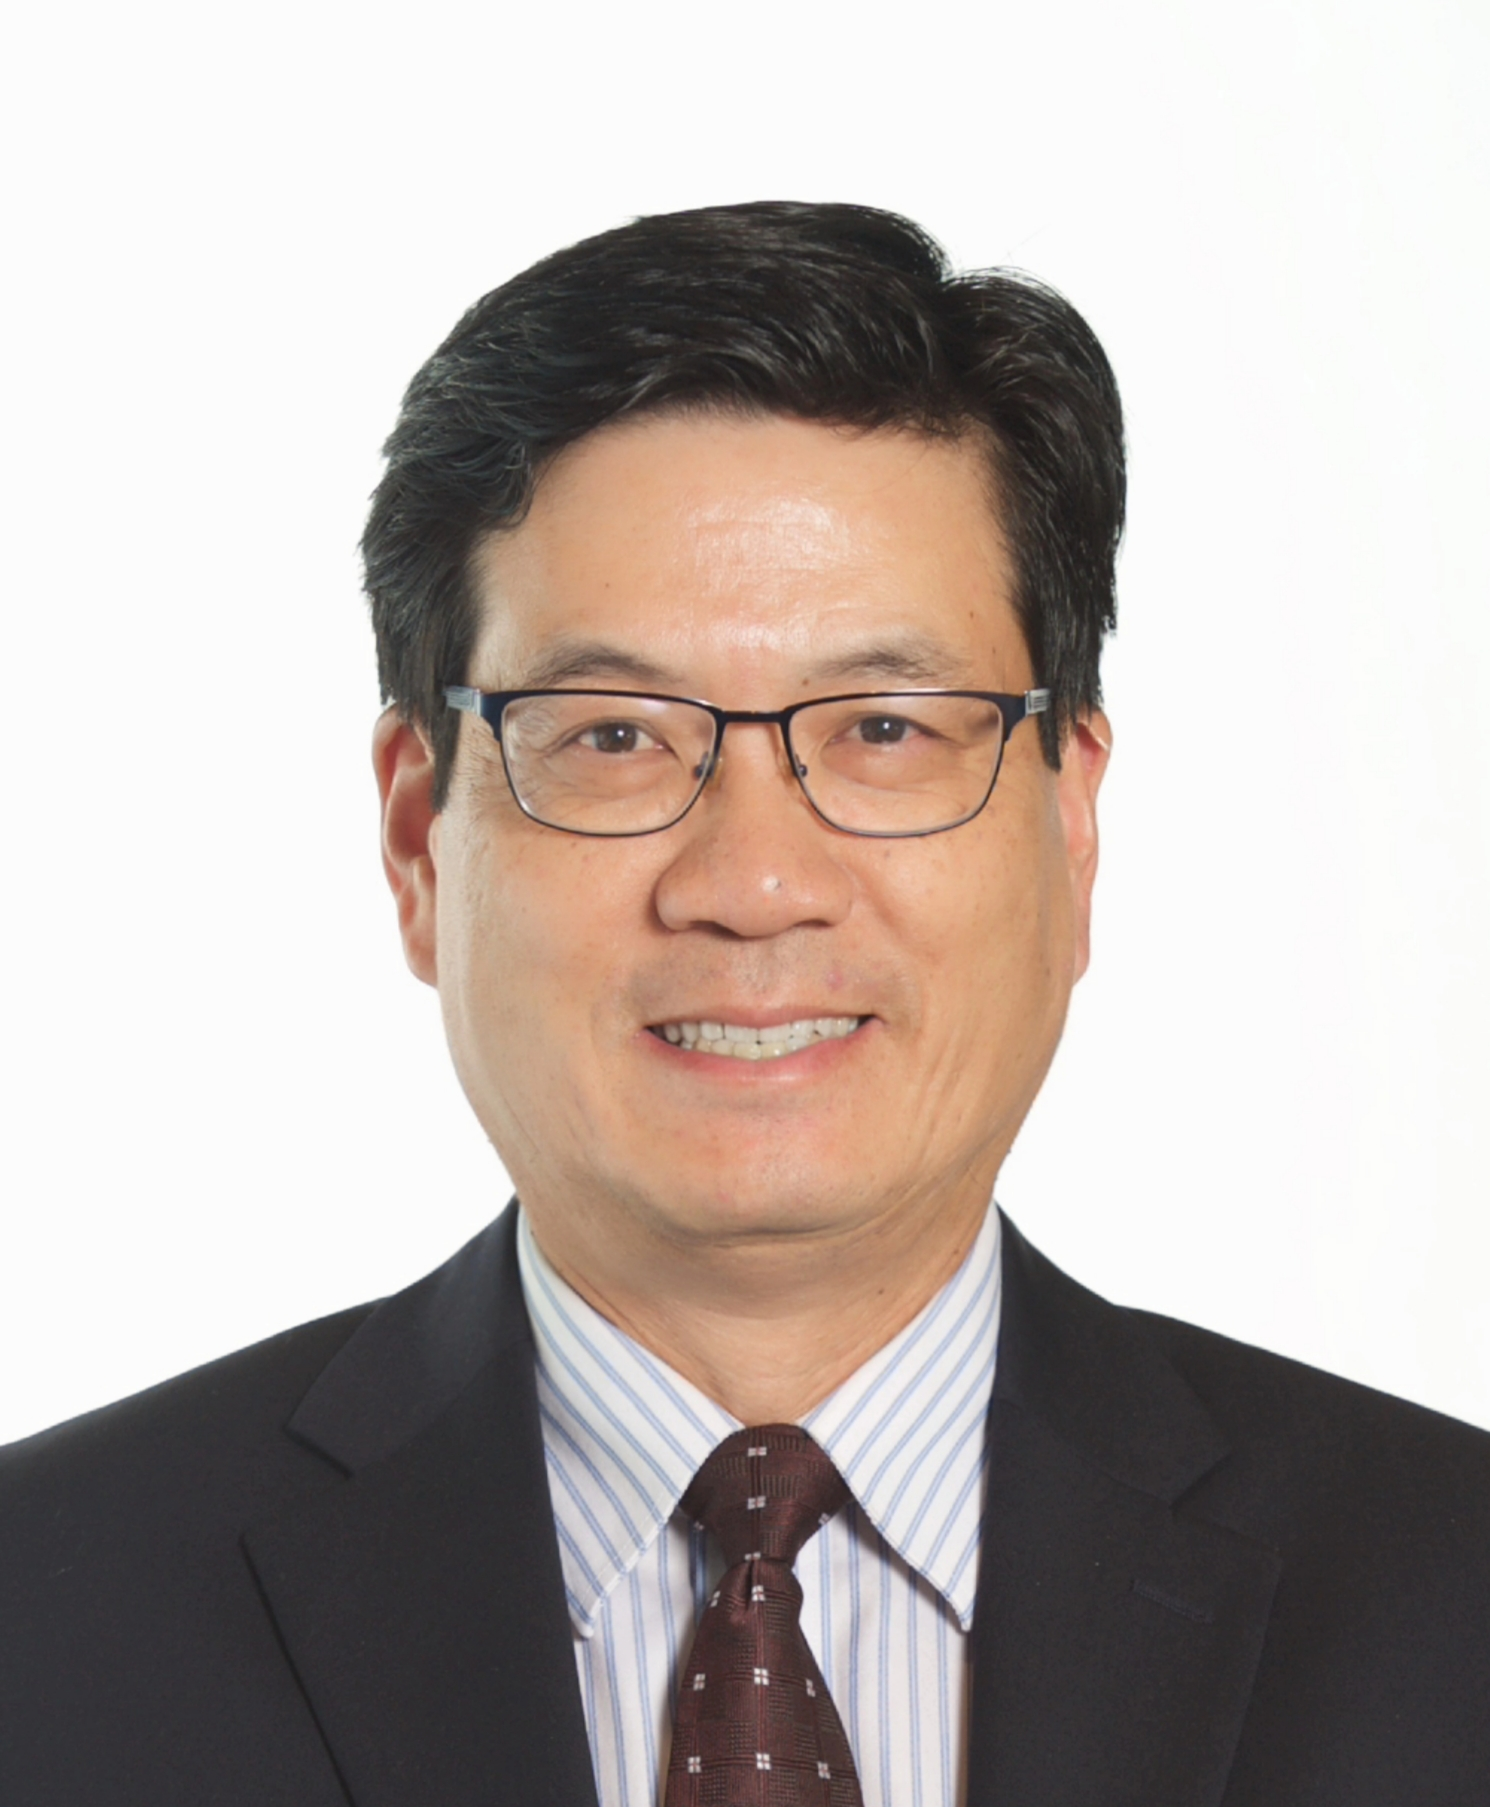 Benjamin Wu, DDS, PhD   Professor  Chair of the Division  Director of Weintraub Center  Executive Director of Innovative Digital Dentistry Systems, or iDDS